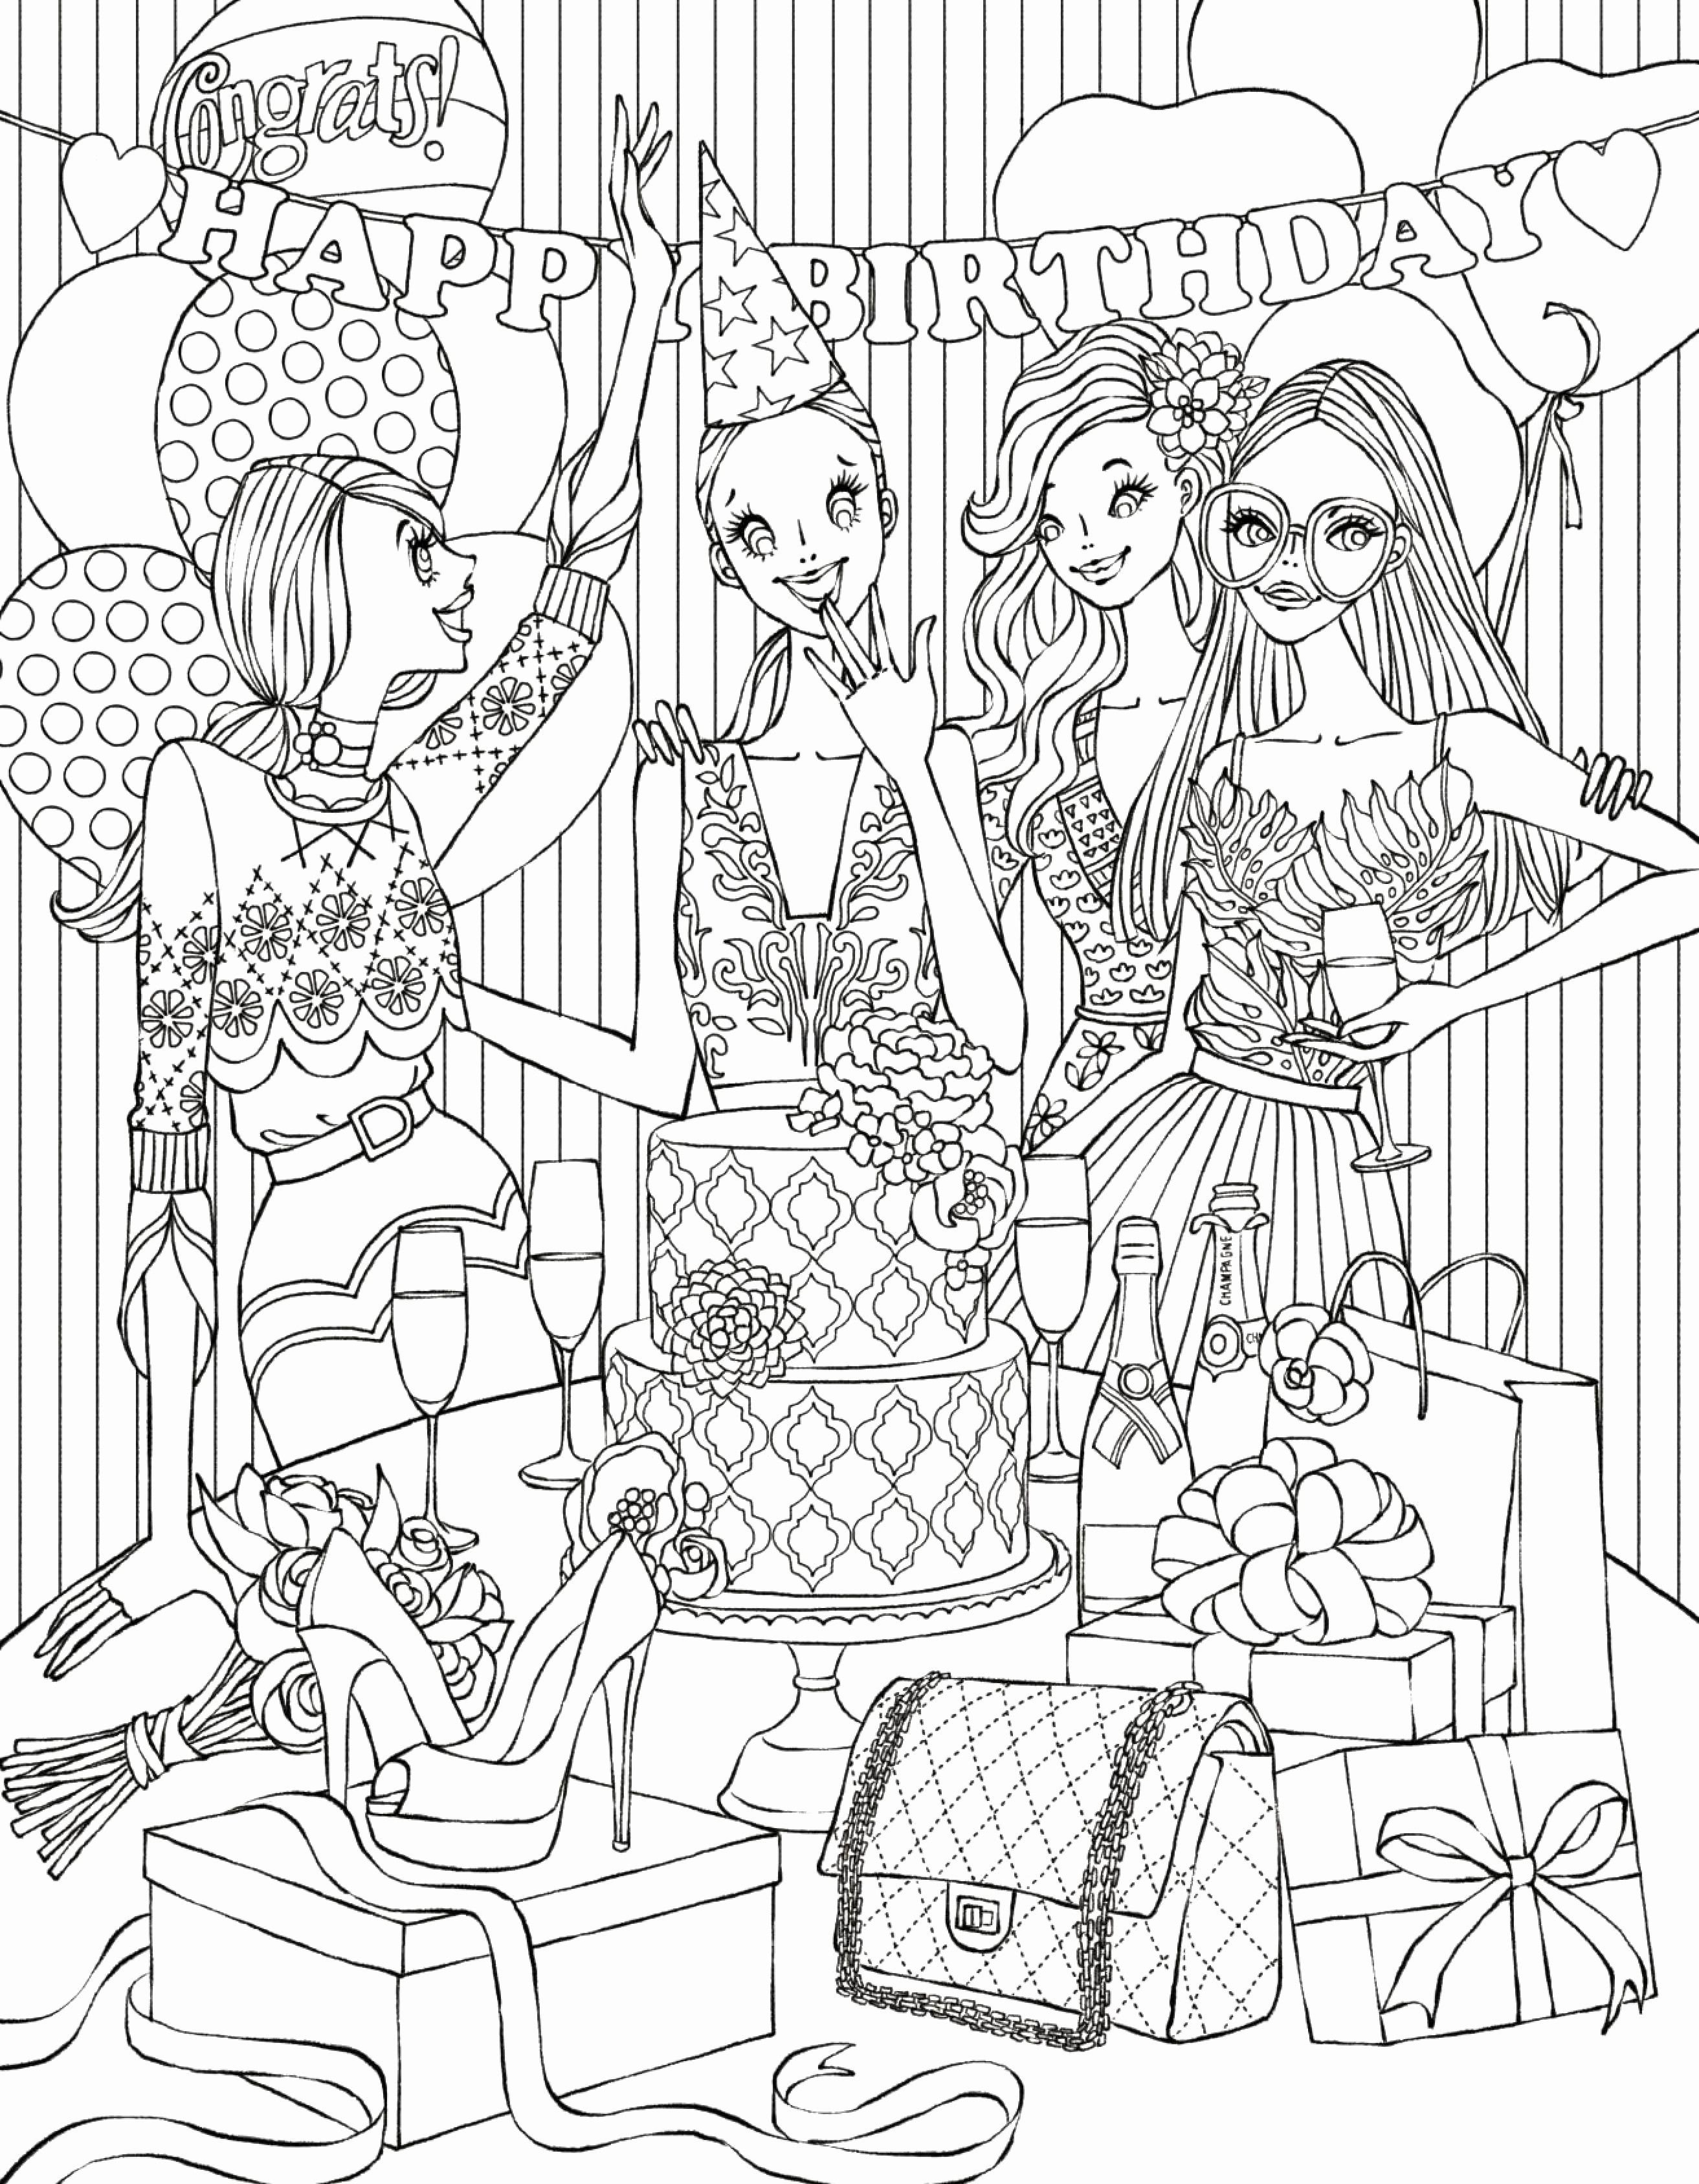 Self Control Coloring Pages Printable